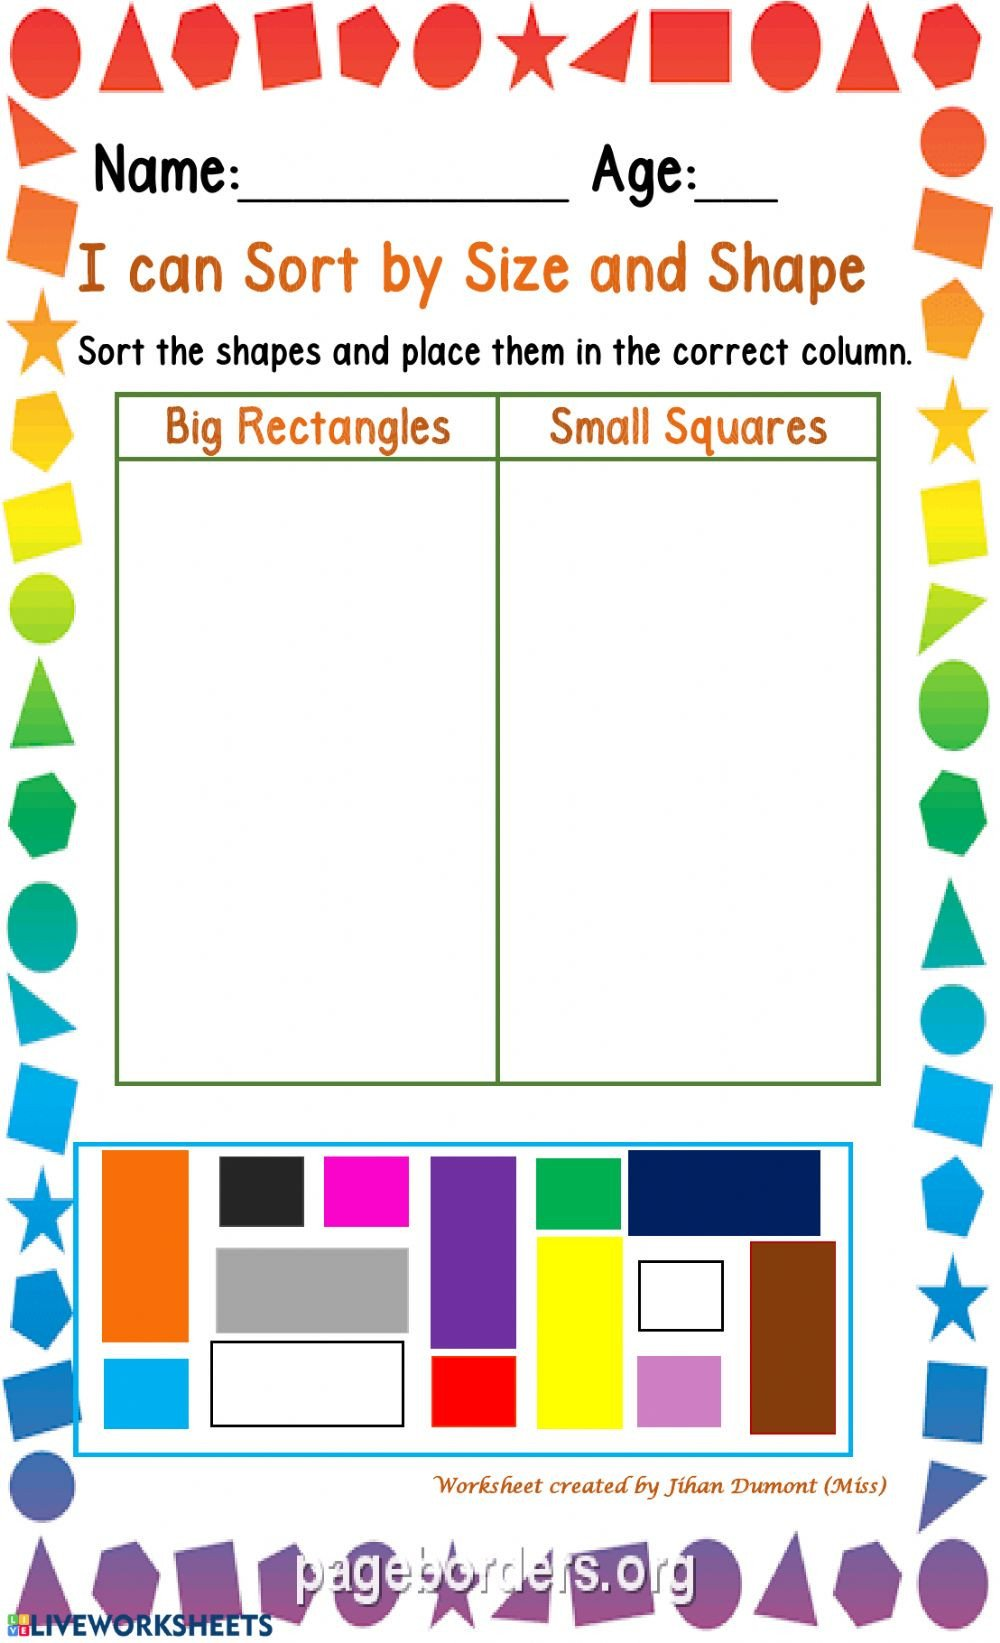 Sorting Shapes Worksheets Classification Of Size and Shape Interactive Worksheet